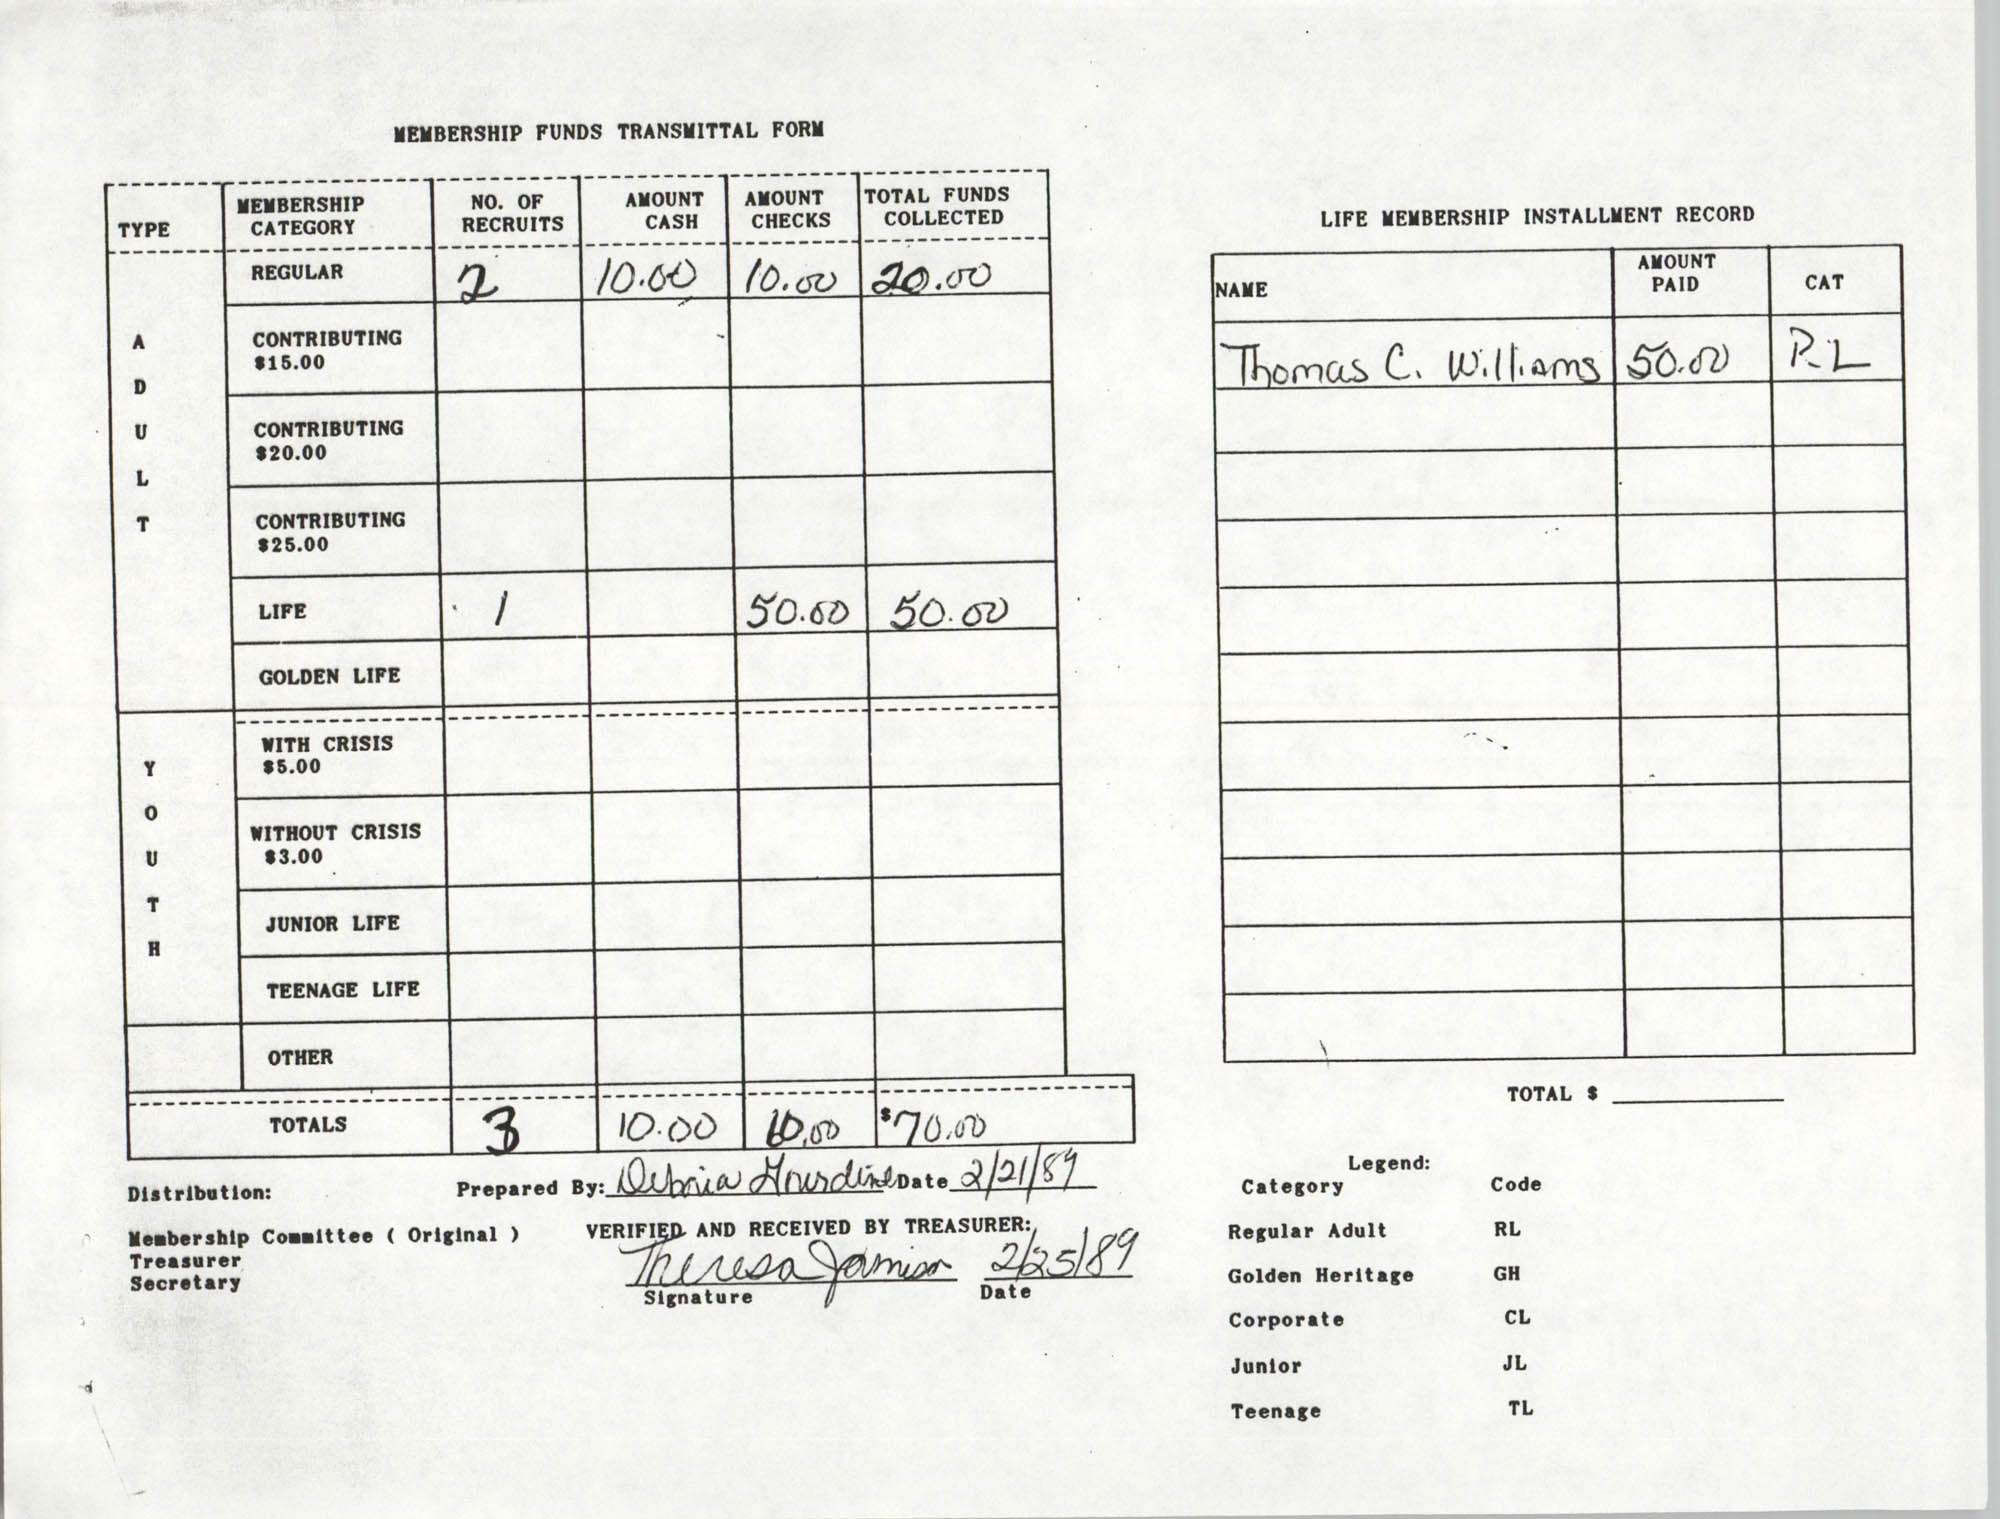 Charleston Branch of the NAACP Funds Transmittal Forms, February 1989, Page 5